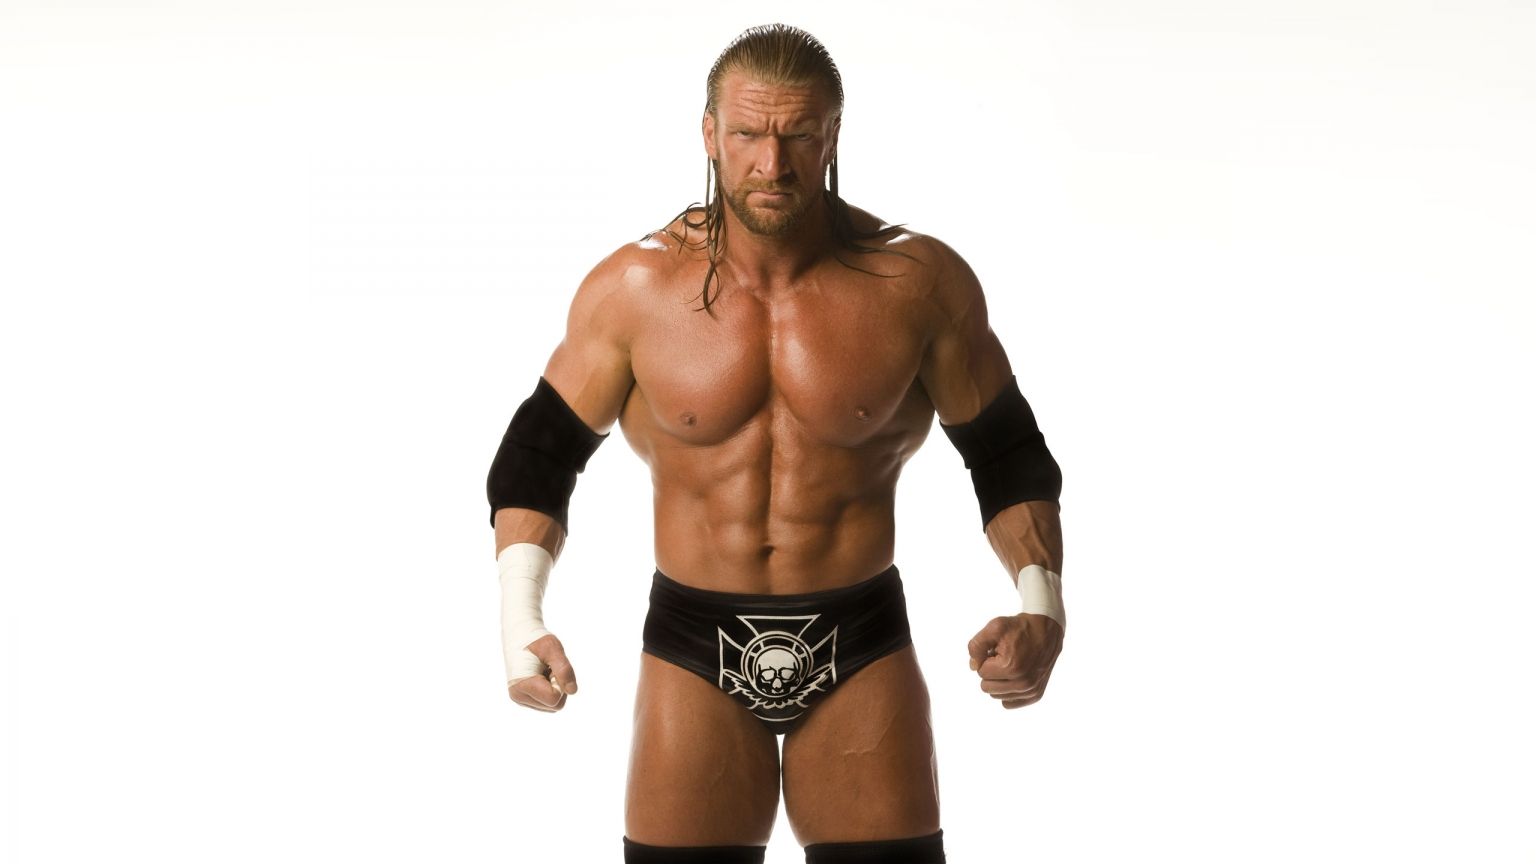 Triple H for 1536 x 864 HDTV resolution